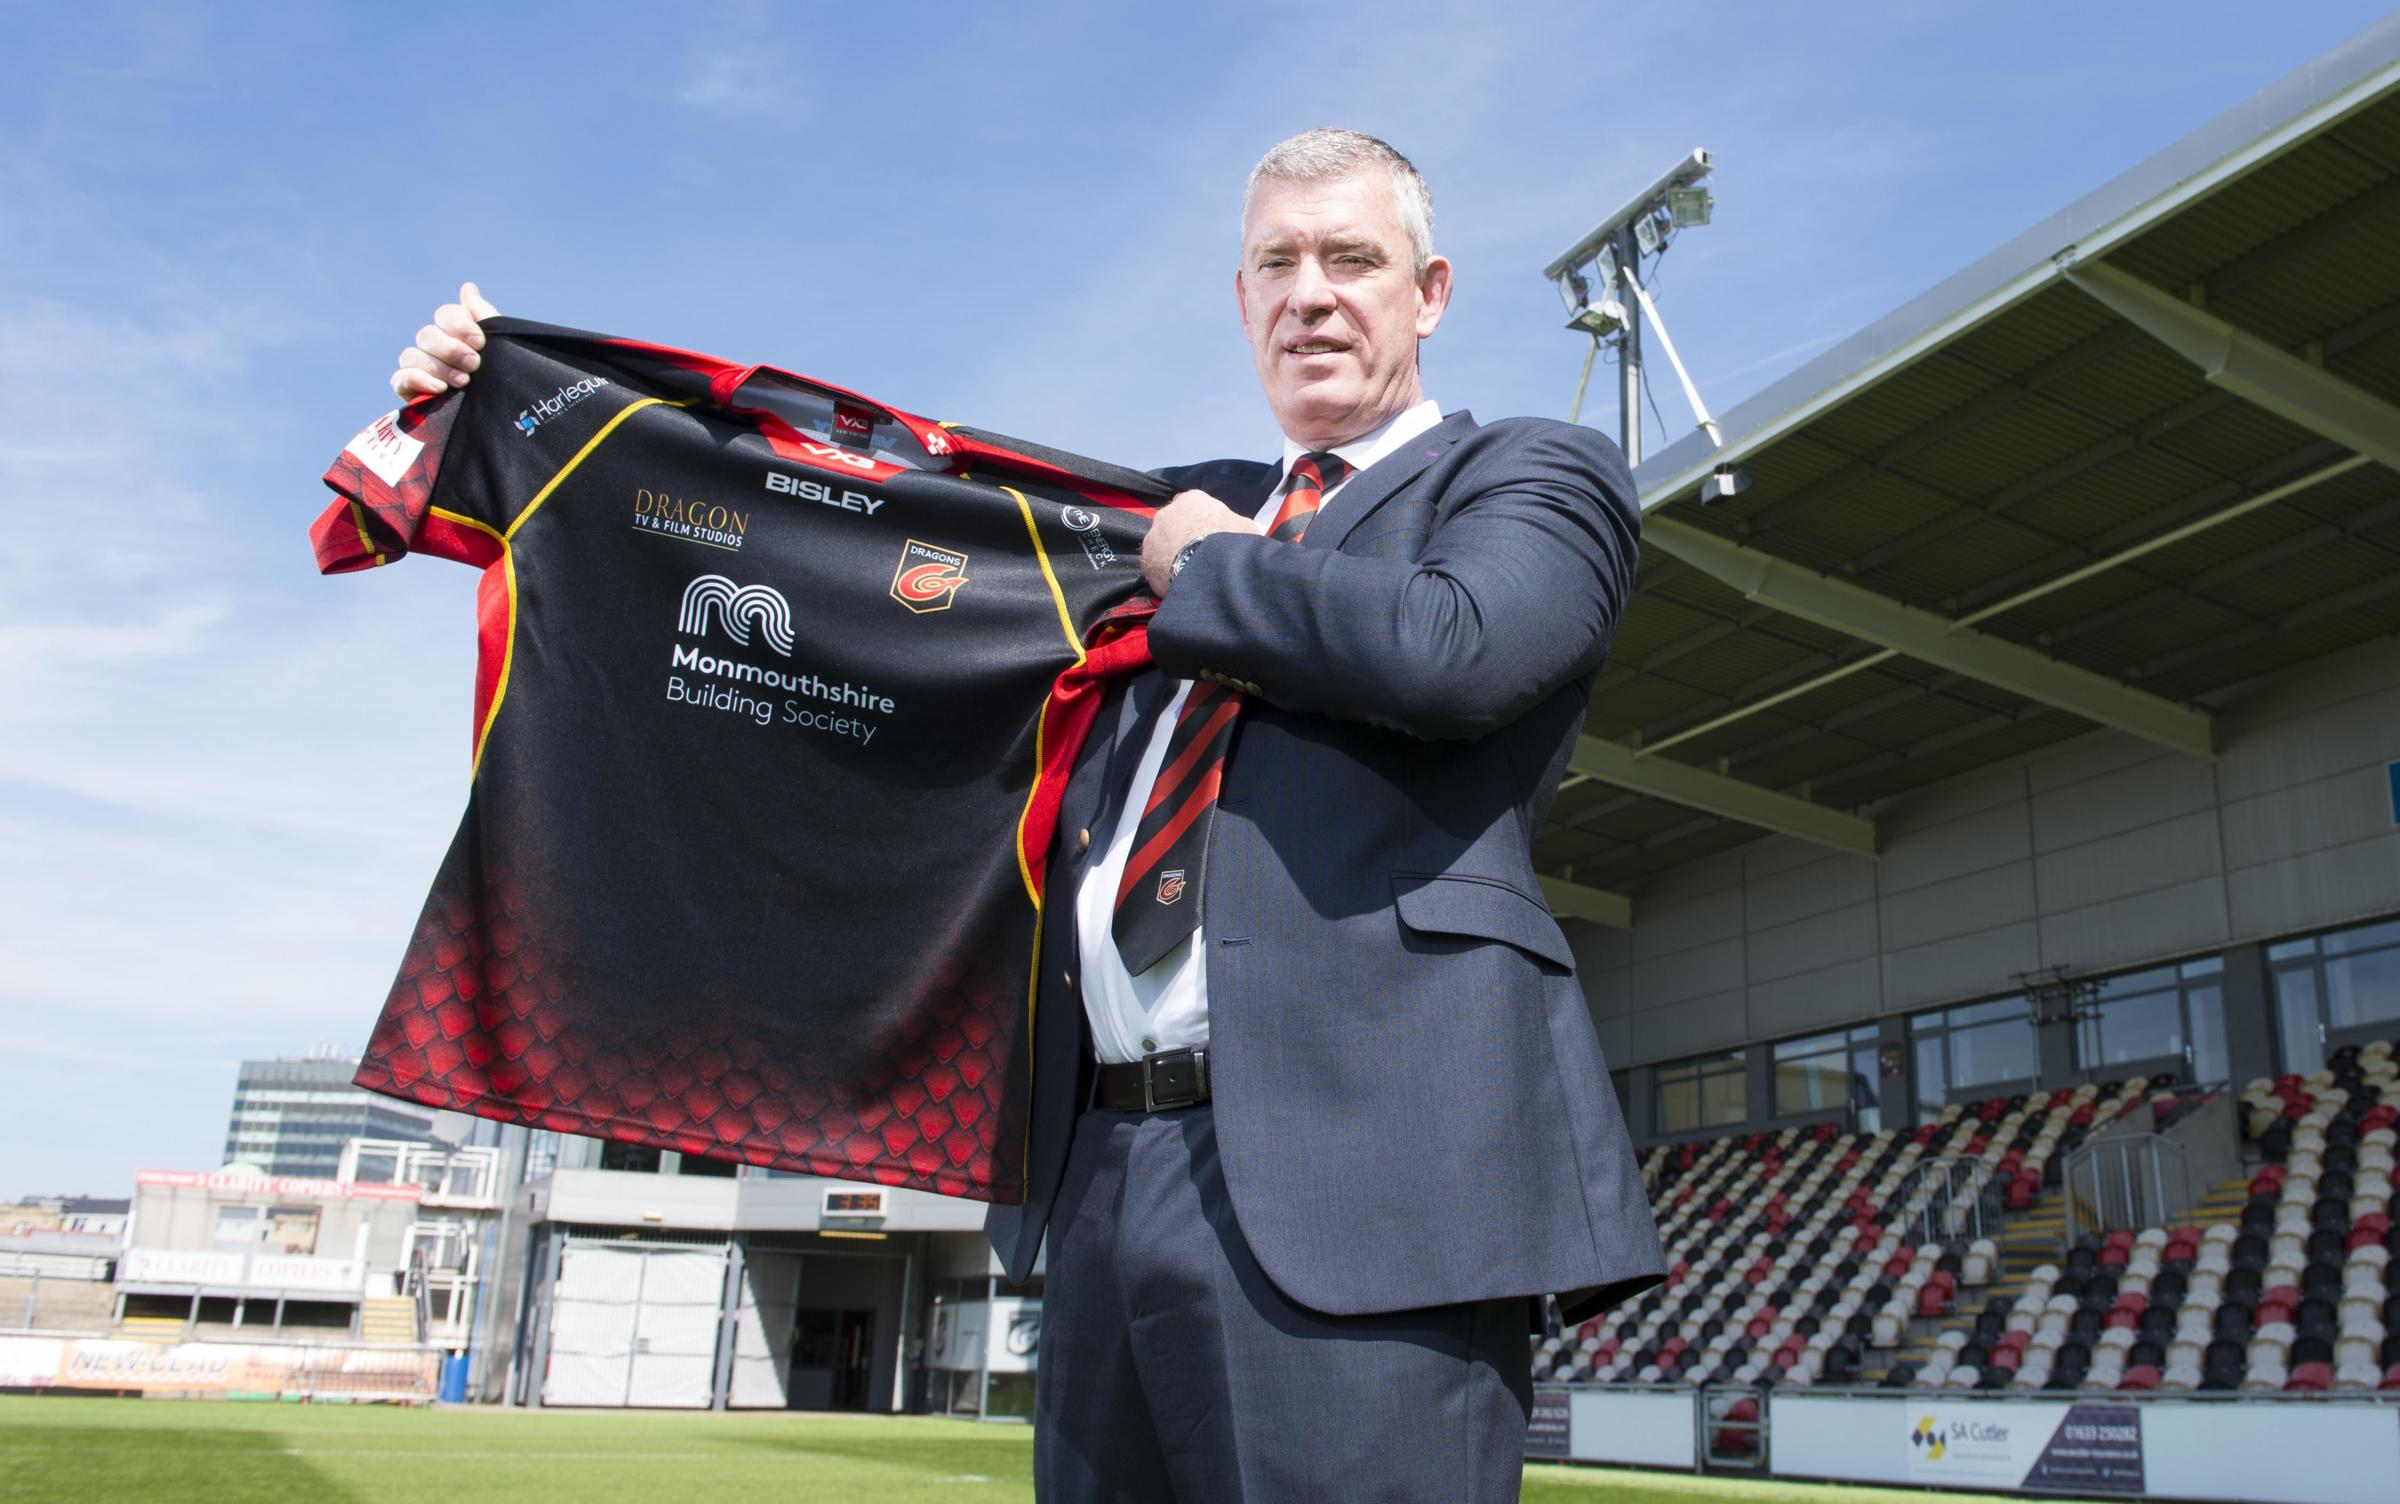 14.05.19 -  Dean Ryan pictured after being appointed Director, Dragons Rugby at Rodney Parade, Newport.